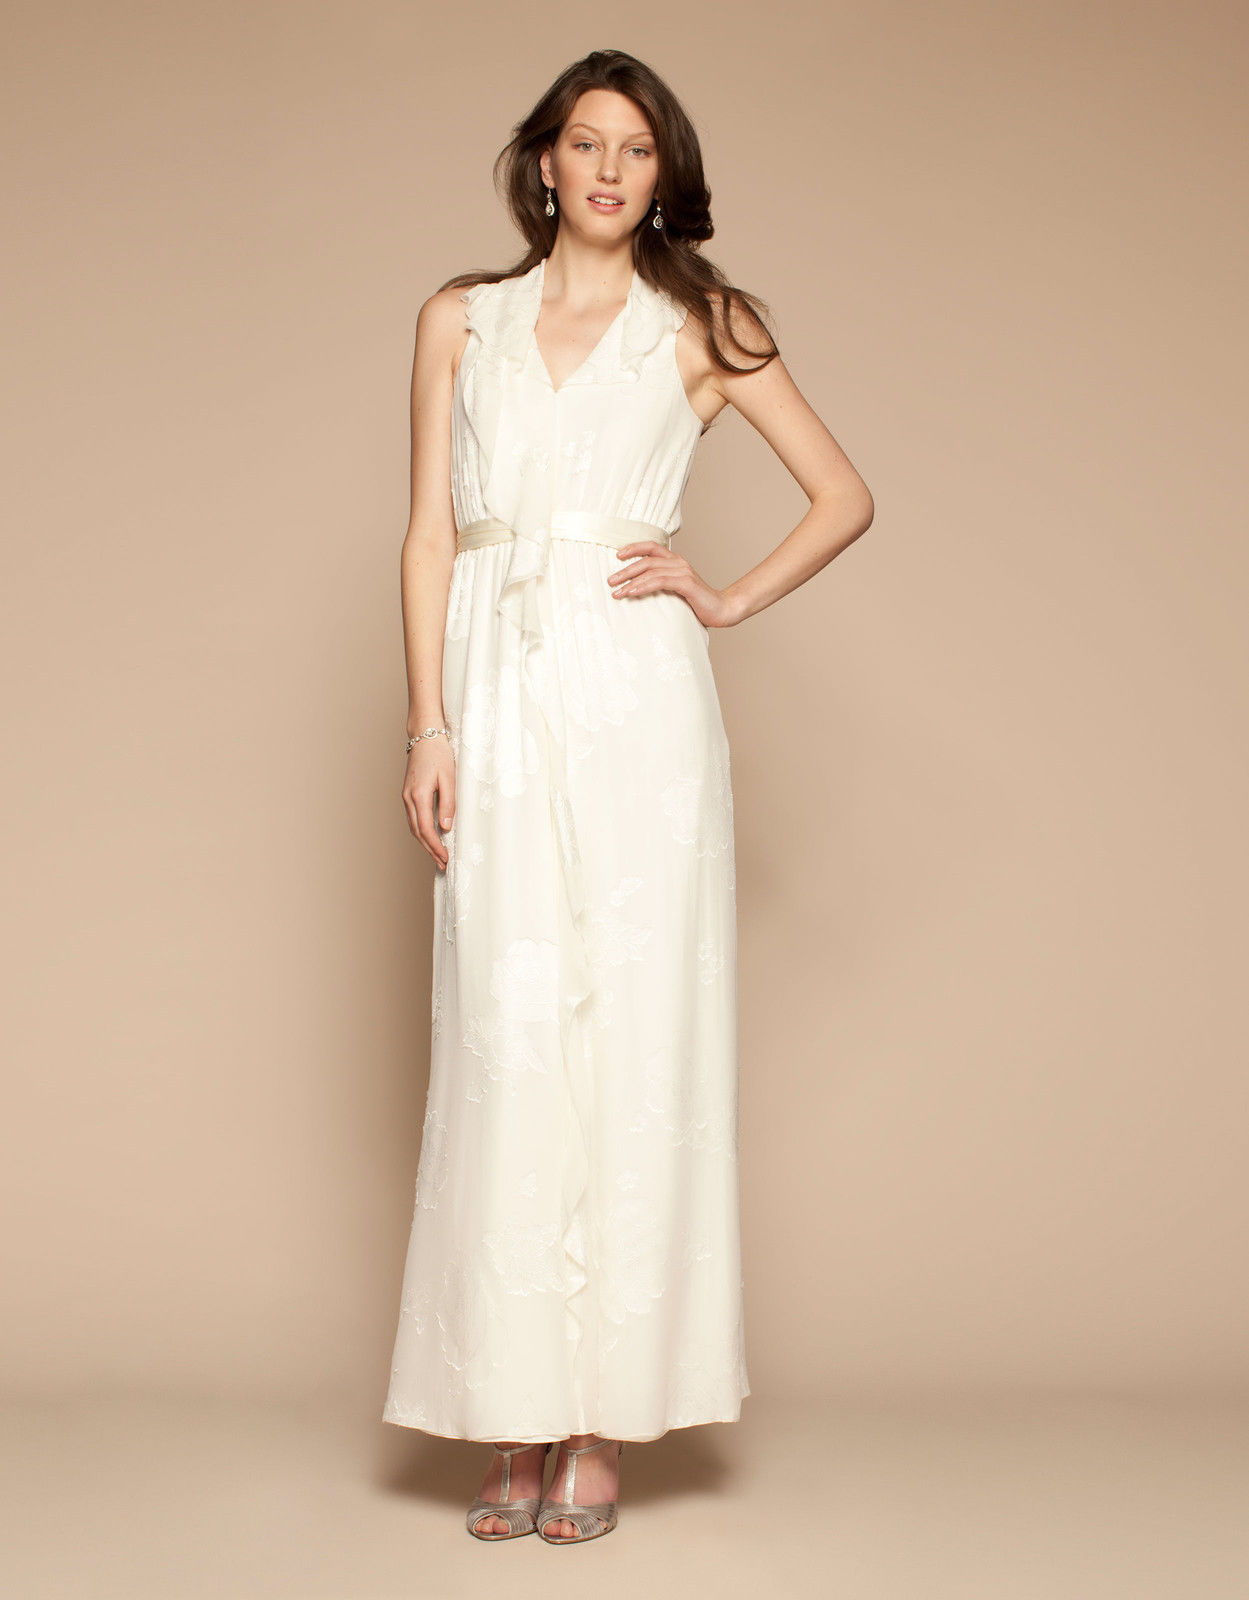 NEW WITH TAGS Lovely Monsoon Kirkland Cream Jacquard Wedding Dress ...